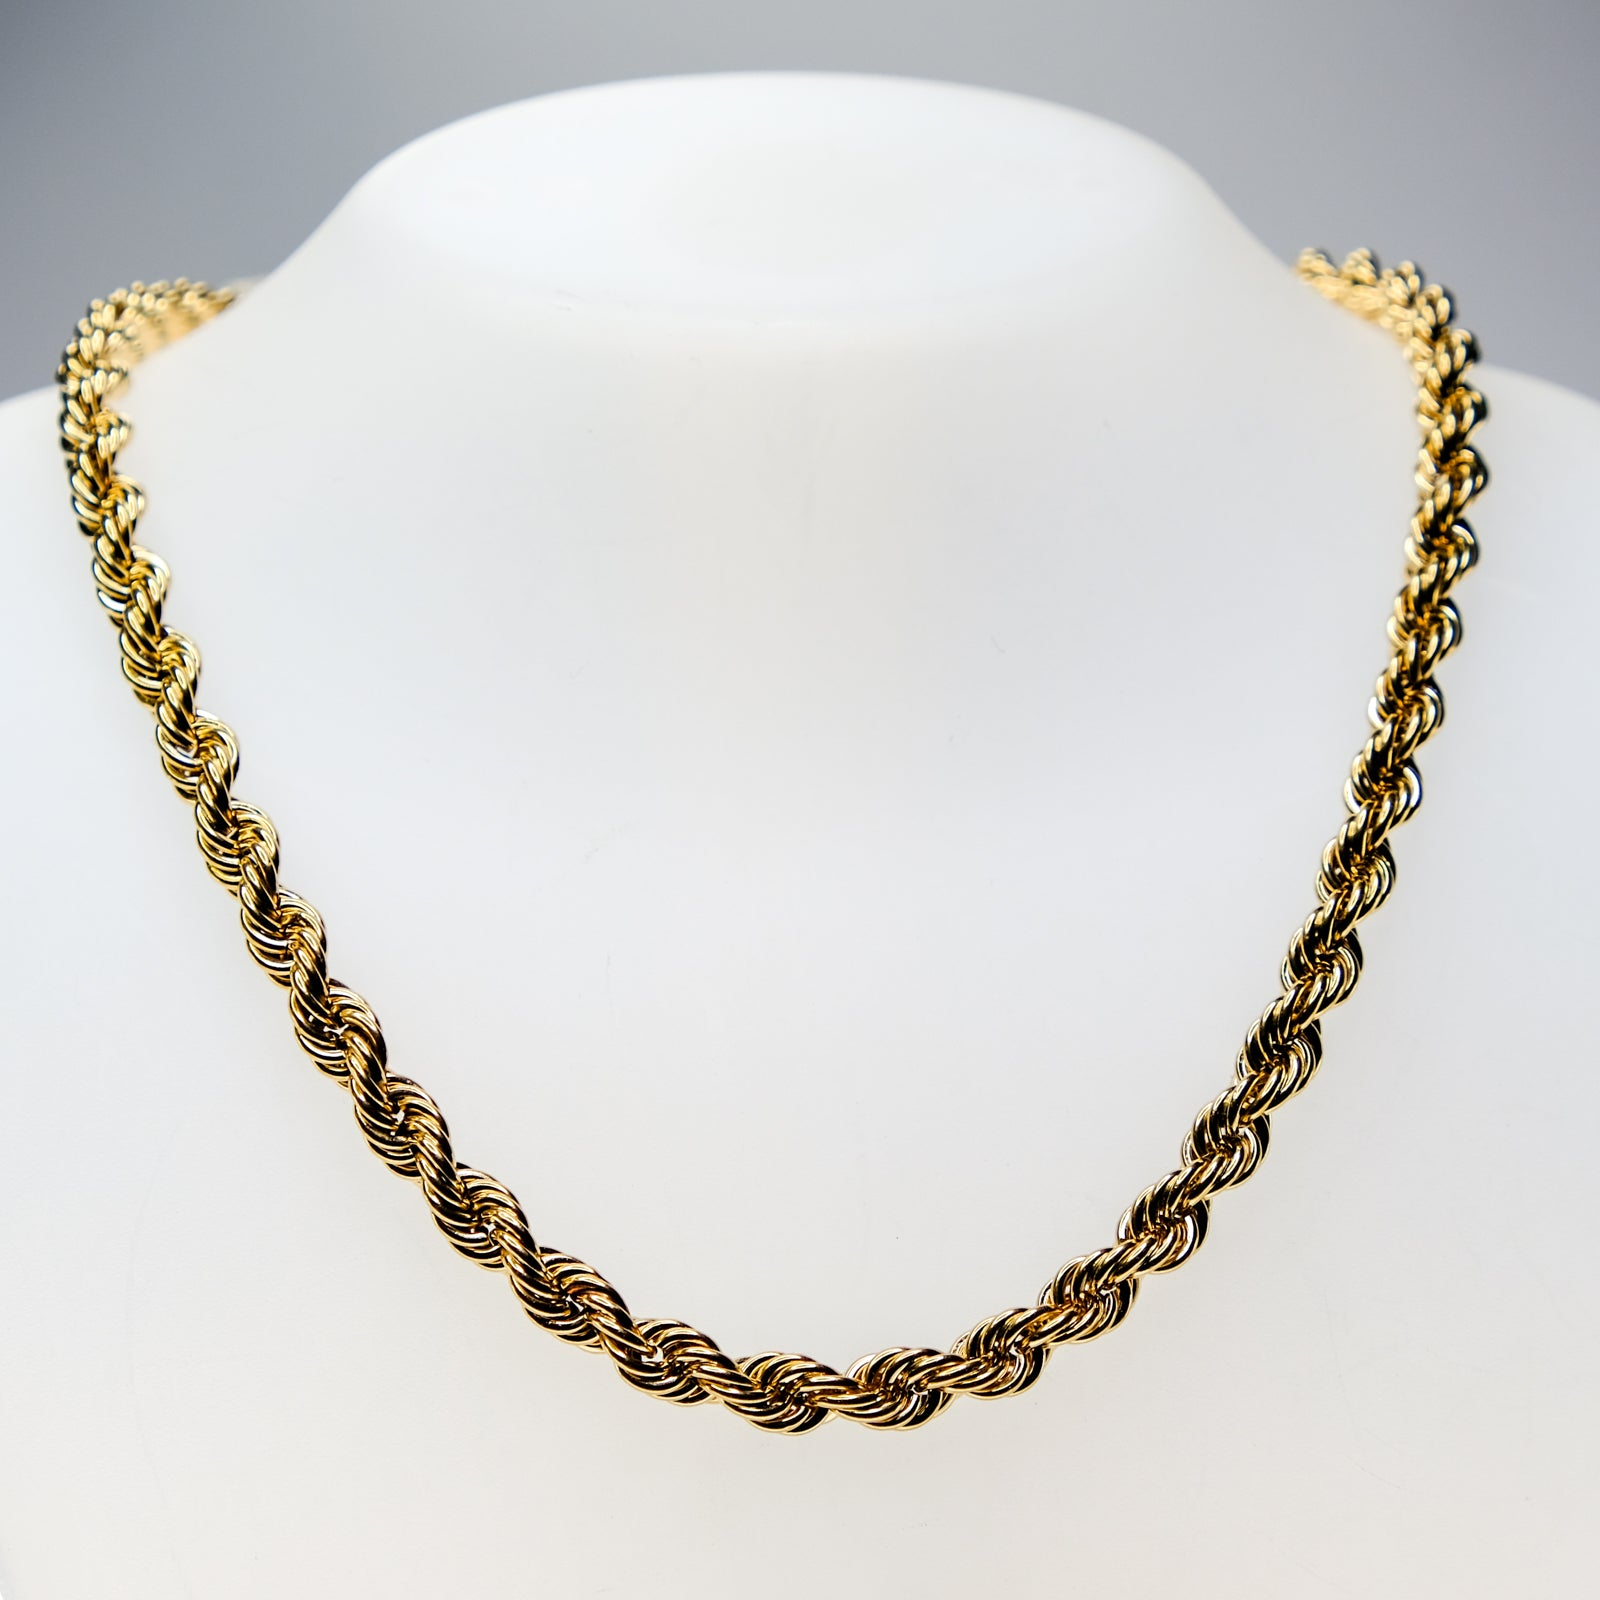 Front view of thick gold rope chain necklace